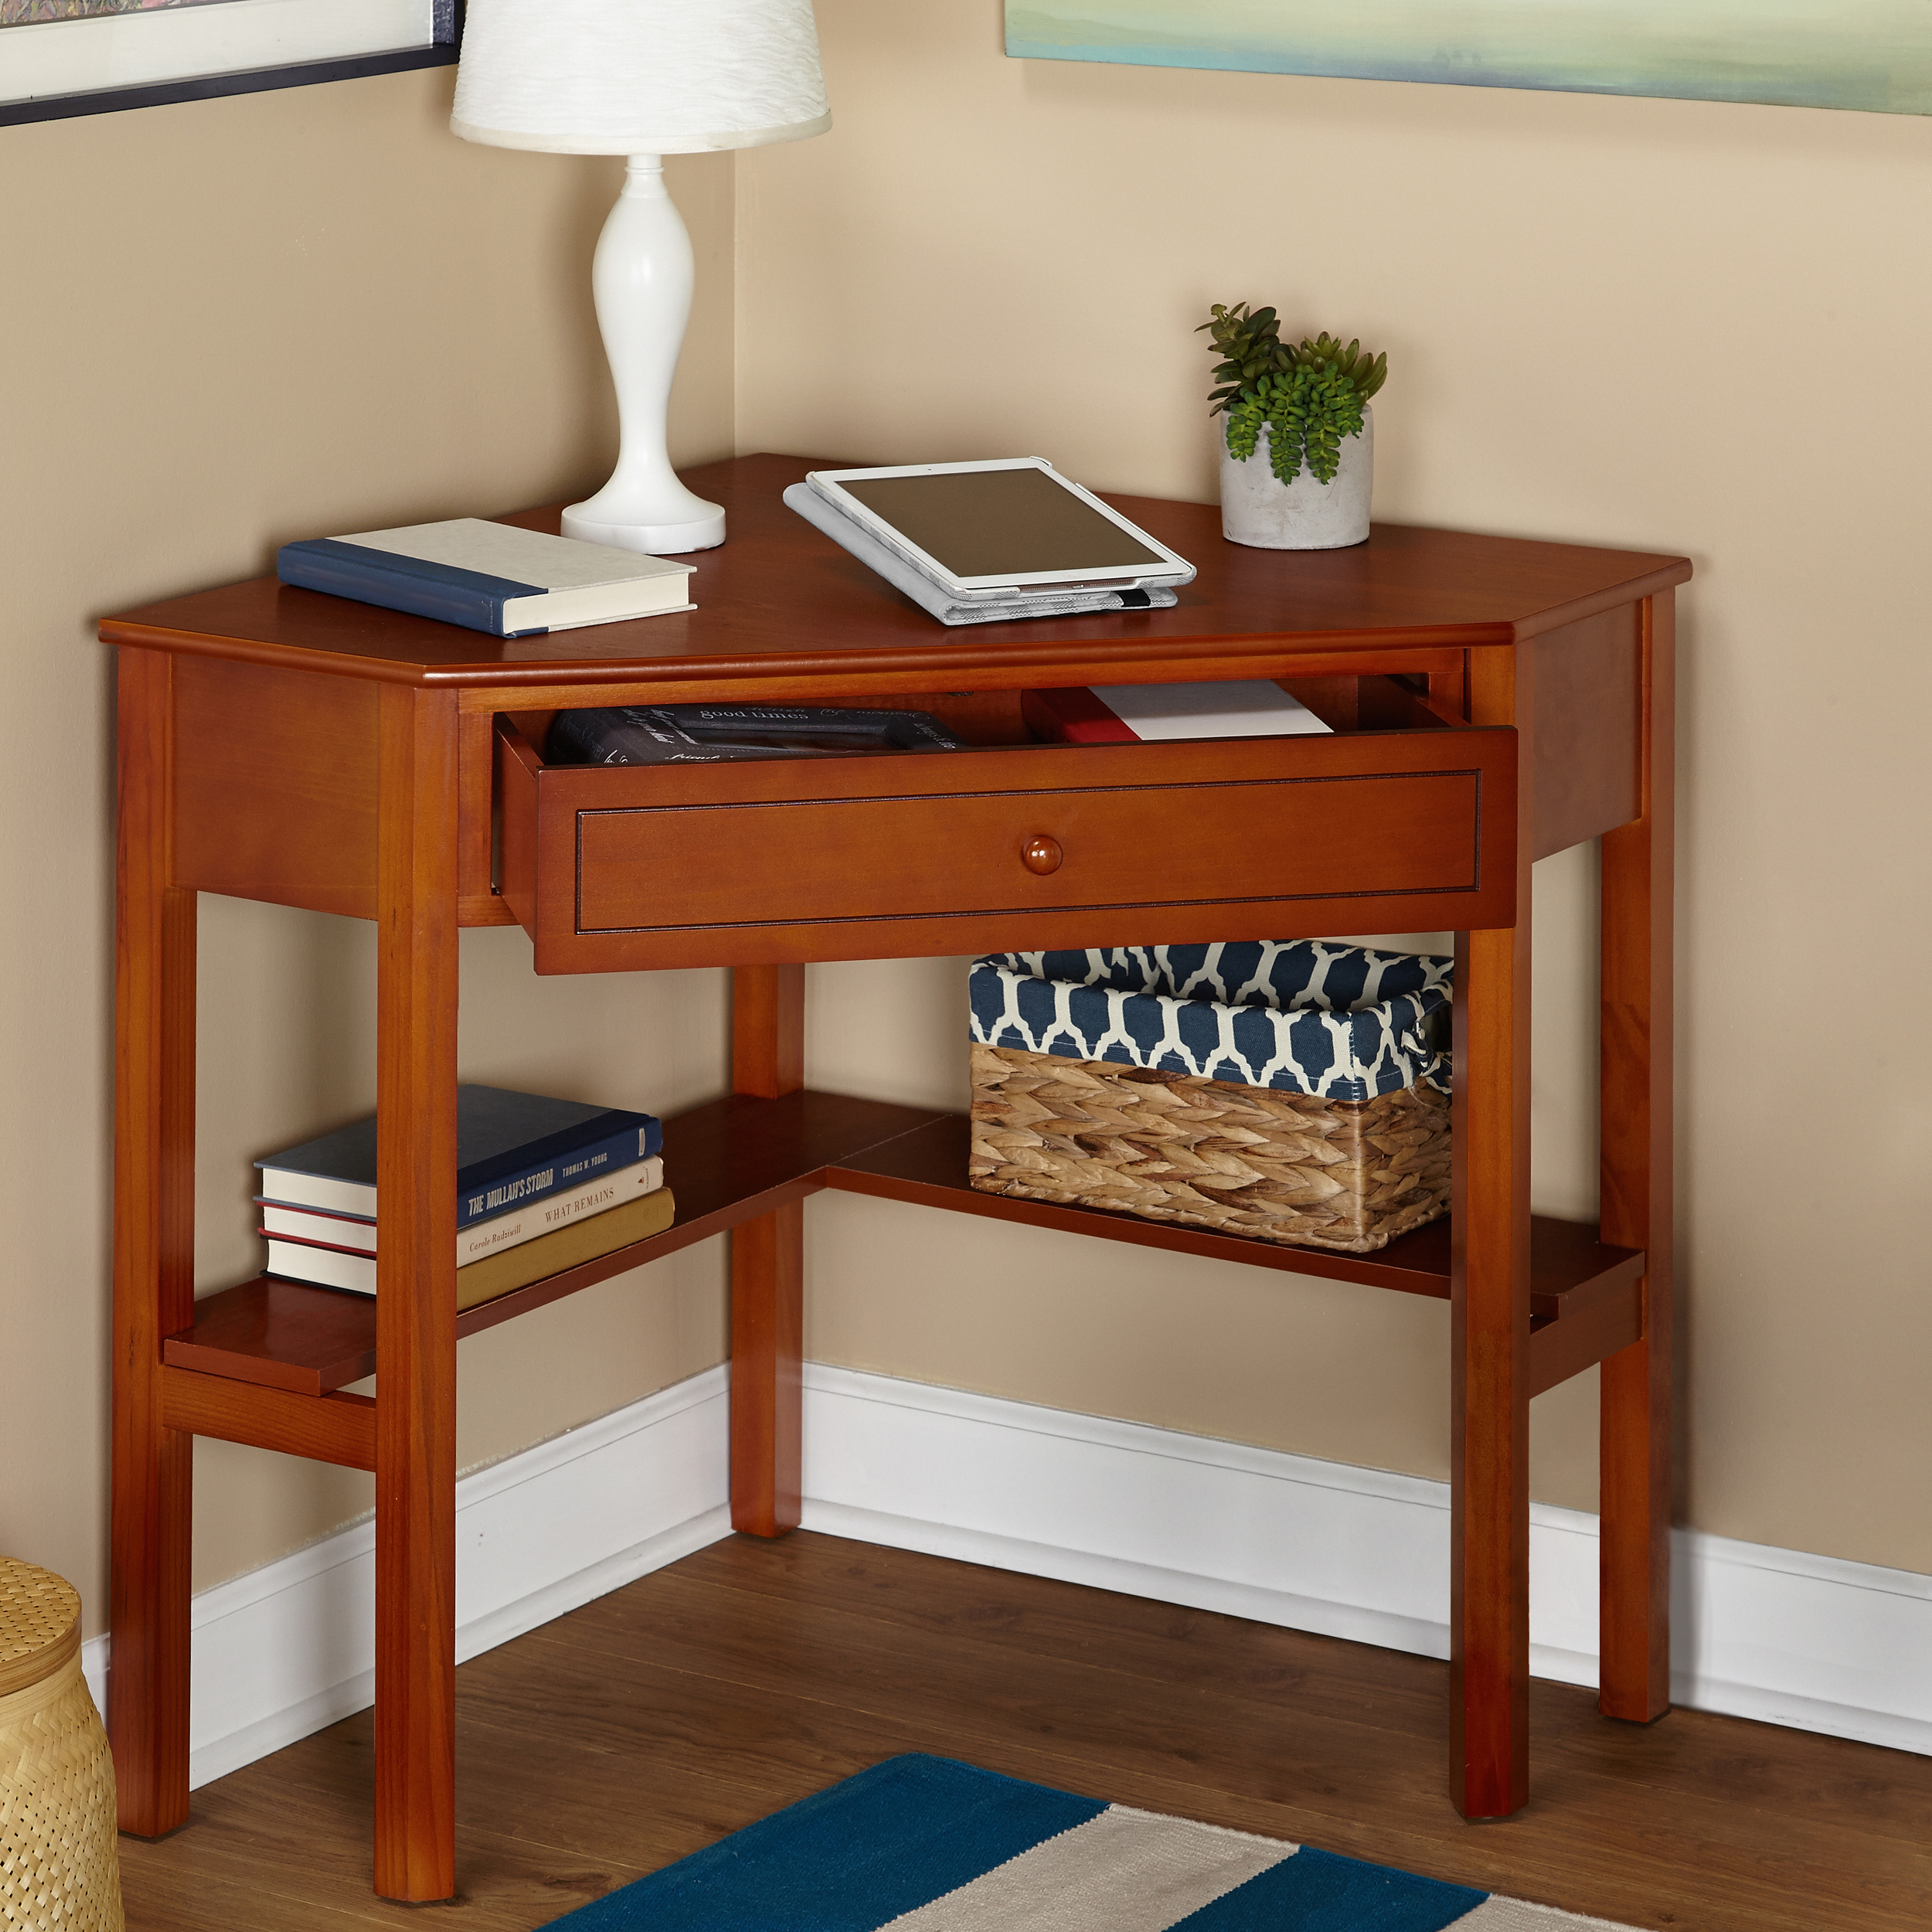 Corner Writing Desk With Pullout Drawer And Shelf Multiple Finishes Walmart Com Walmart Com